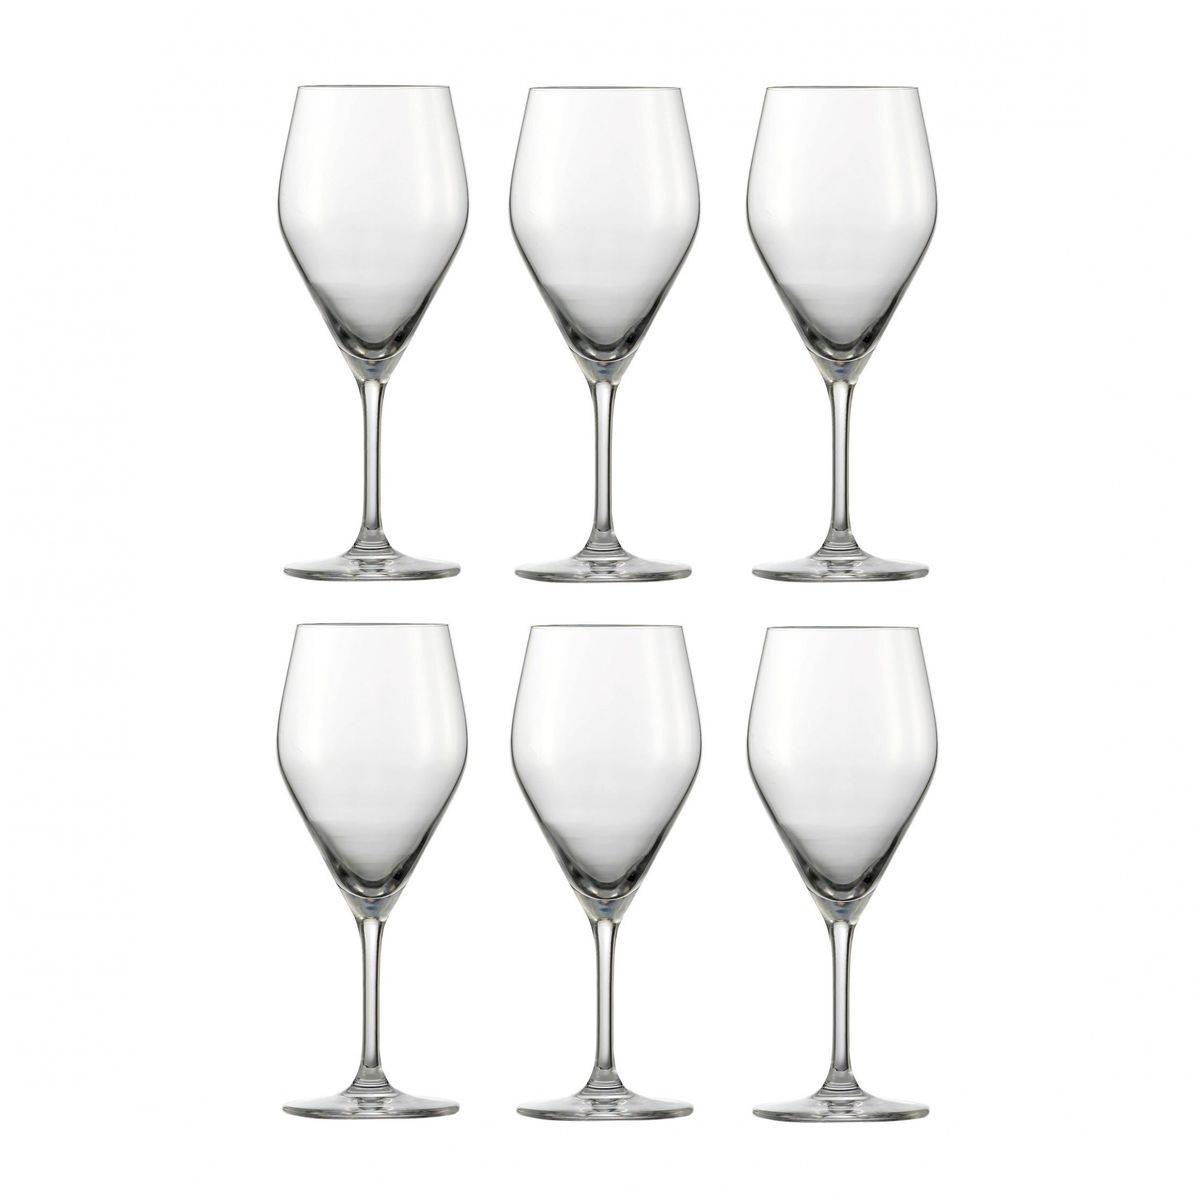 Chardonnay Wine Glass Audience Chardonnay White Wine Glass Set Of 6 Schott